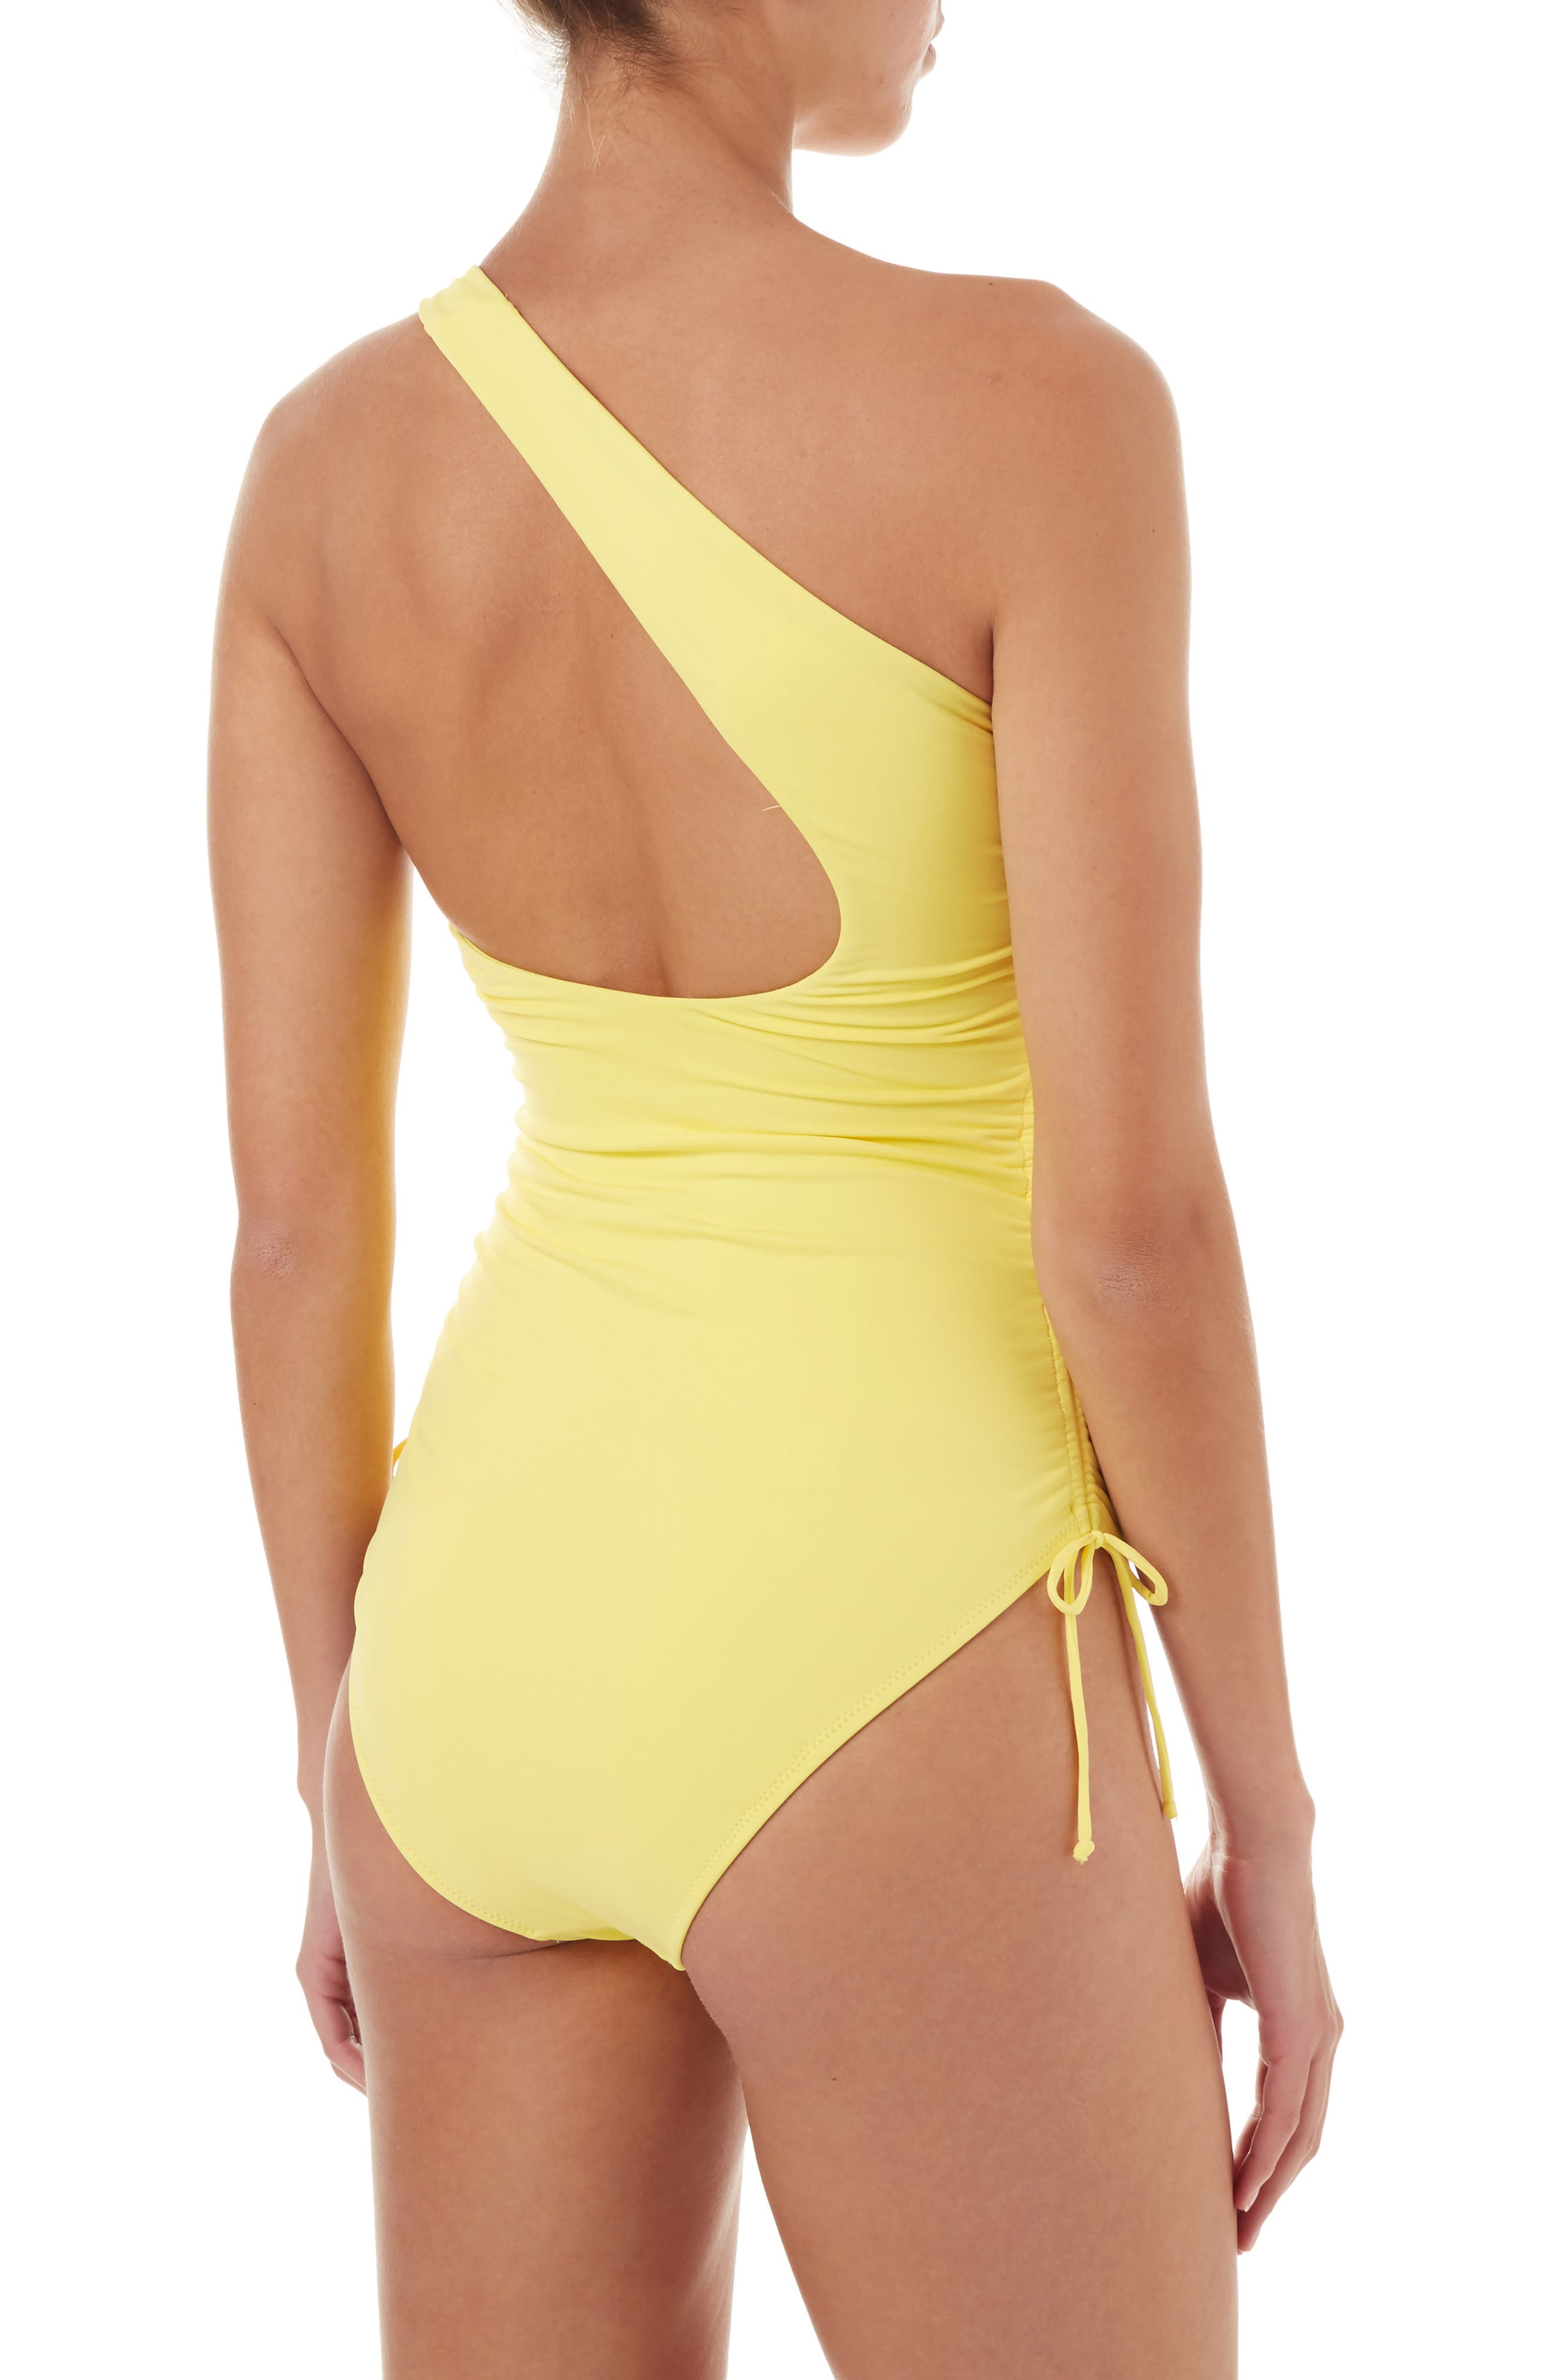 Polynesia One-Strap One-Piece Swimsuit,                             Alternate thumbnail 2, color,                             YELLOW